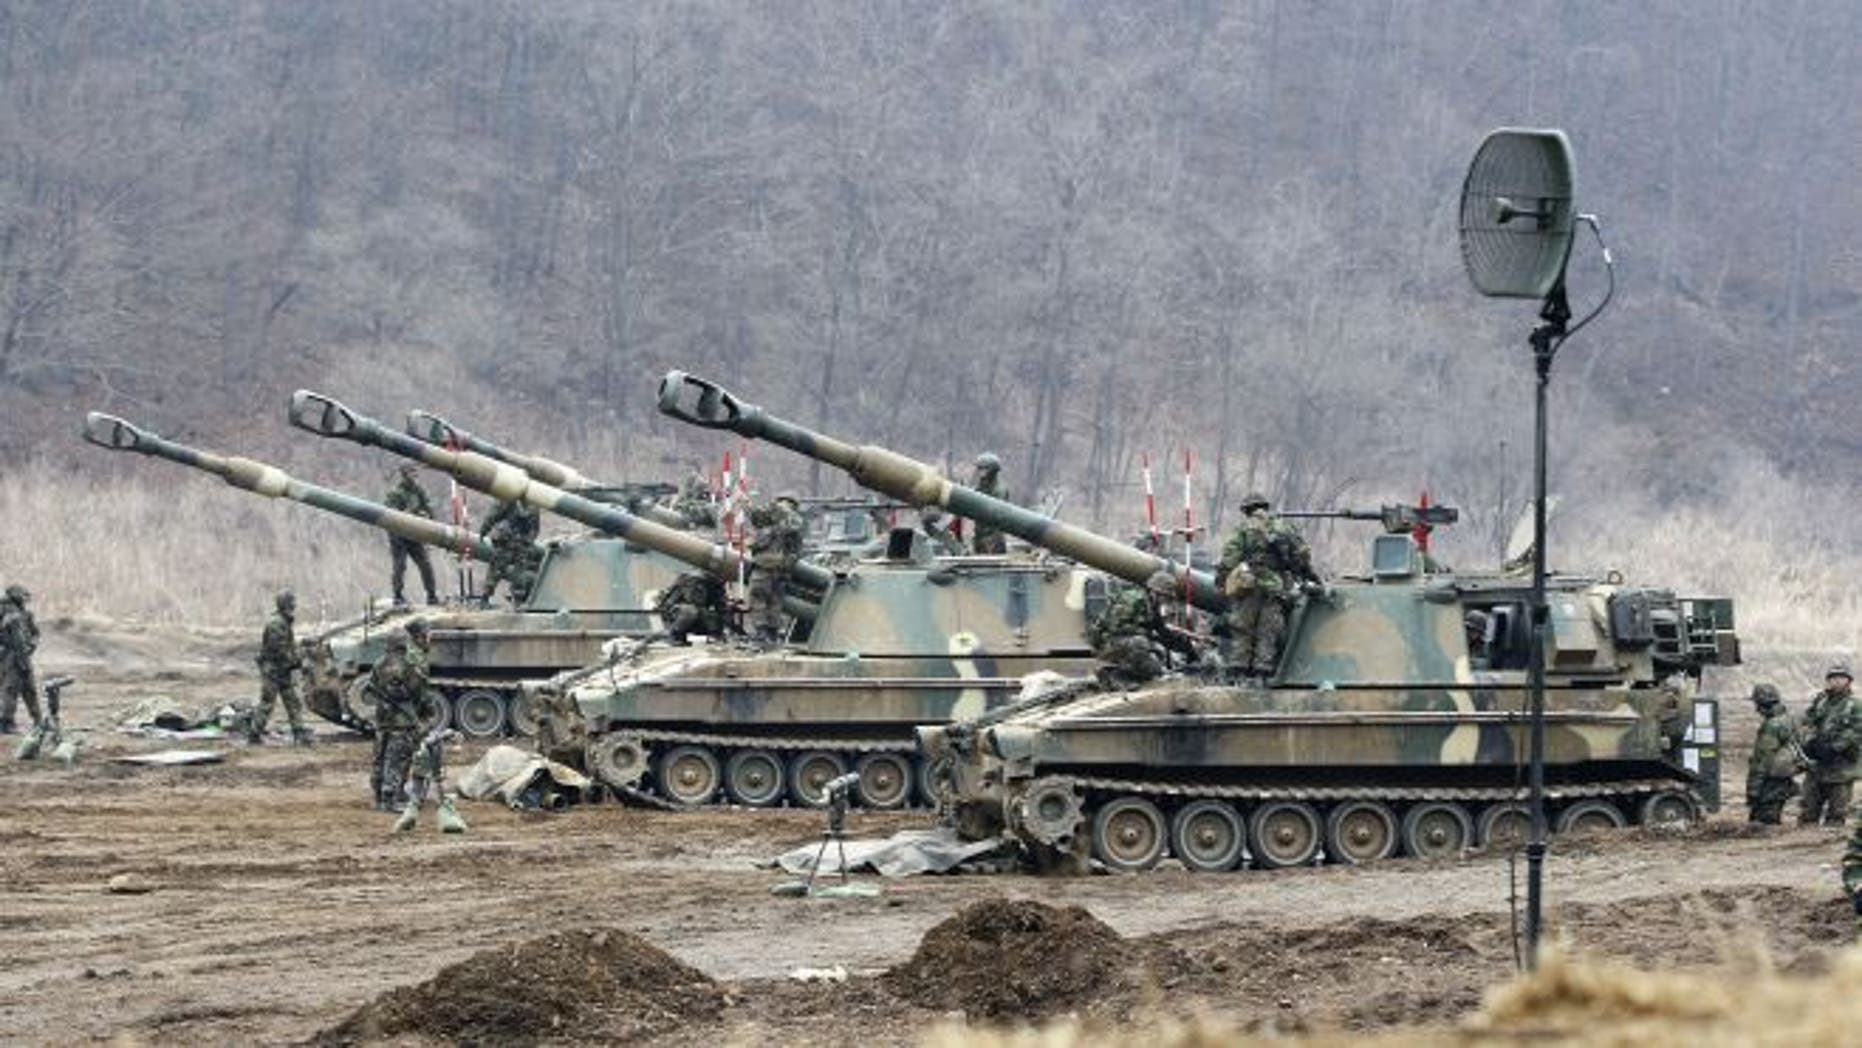 FILE: March 7, 2013:  South Korean soldiers work on their K-9 self-propelled artillery vehicles during an exercise against possible attacks by North Korea near the border village of Panmunjom in Paju, South Korea.